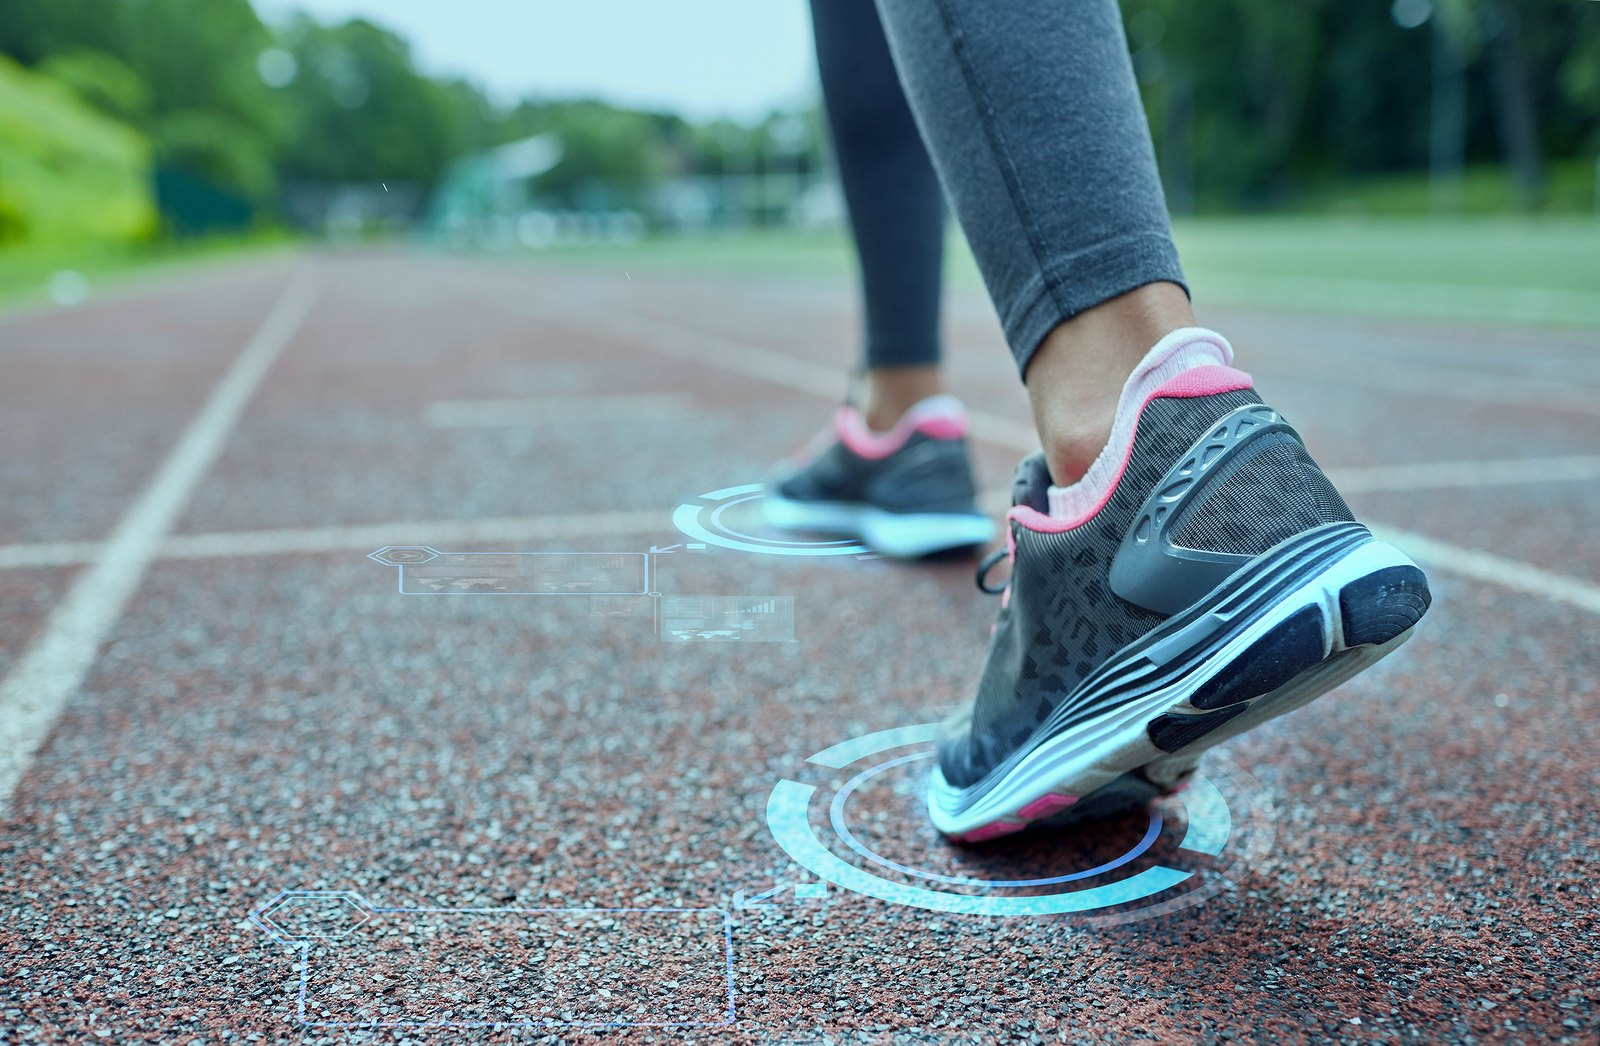 Analyse your fitness exercise and running with these top running apps